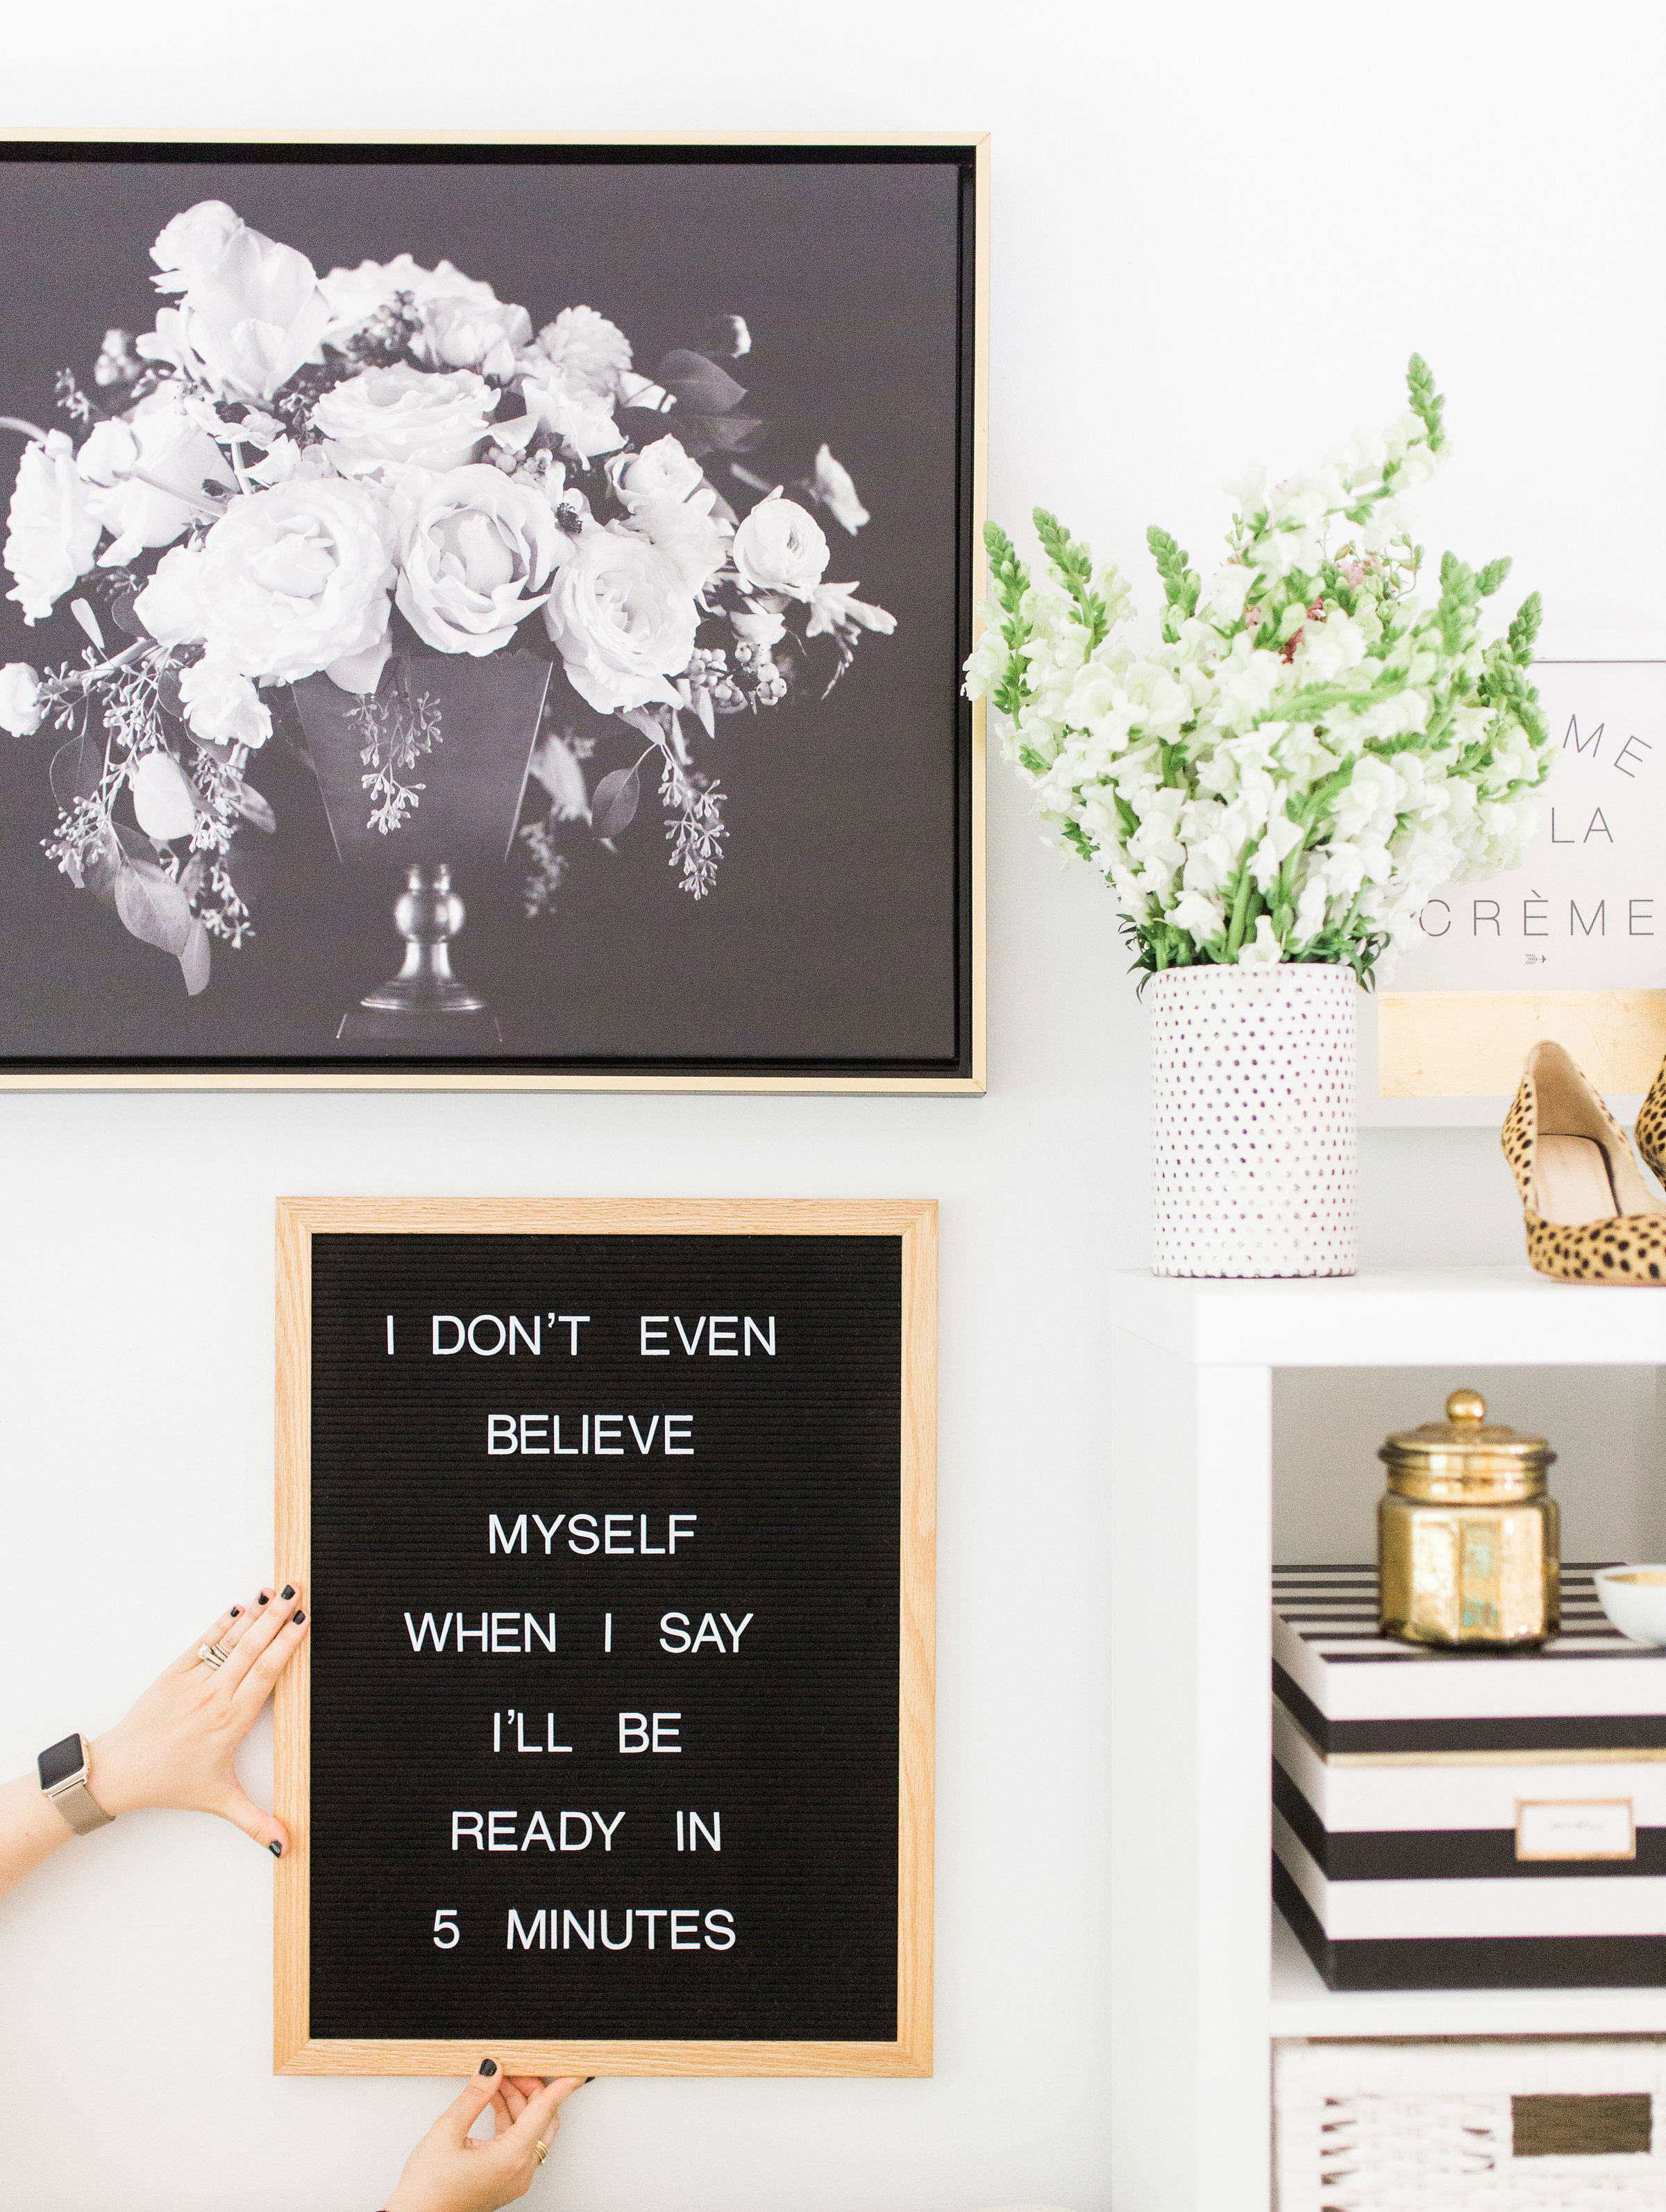 Lifestyle blogger Lexi of Glitter, Inc. shares a few little love notes to the things she loved most this week, including her favorite letter board, the science behind staying forever young, Trader Joes secrets, homemade fig newtons, and weekend plans. // Ready in Five Minutes Funny Quote | glitterinc.com | @glitterinc